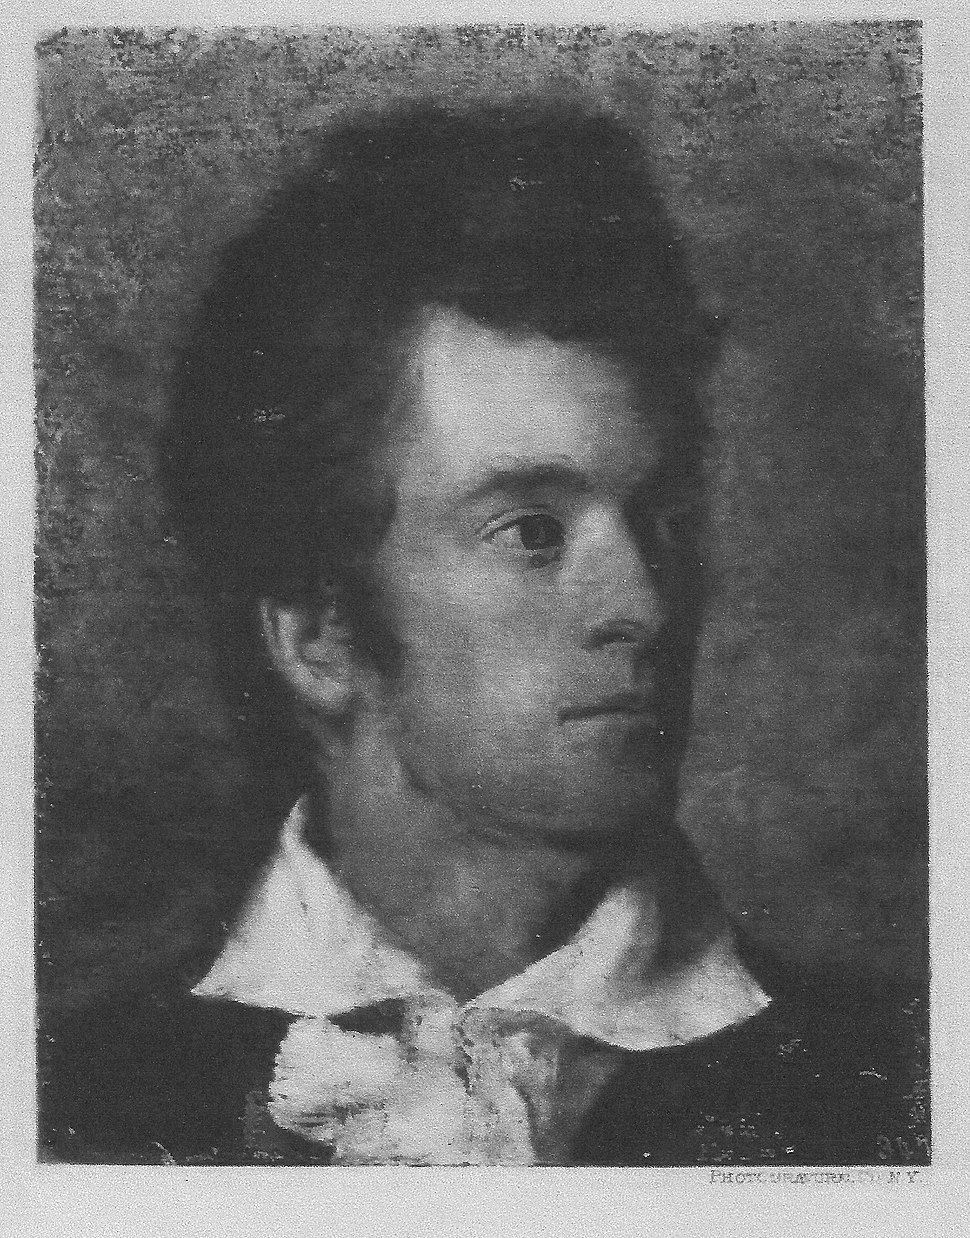 Self-portrait by George Catlin. Age 28